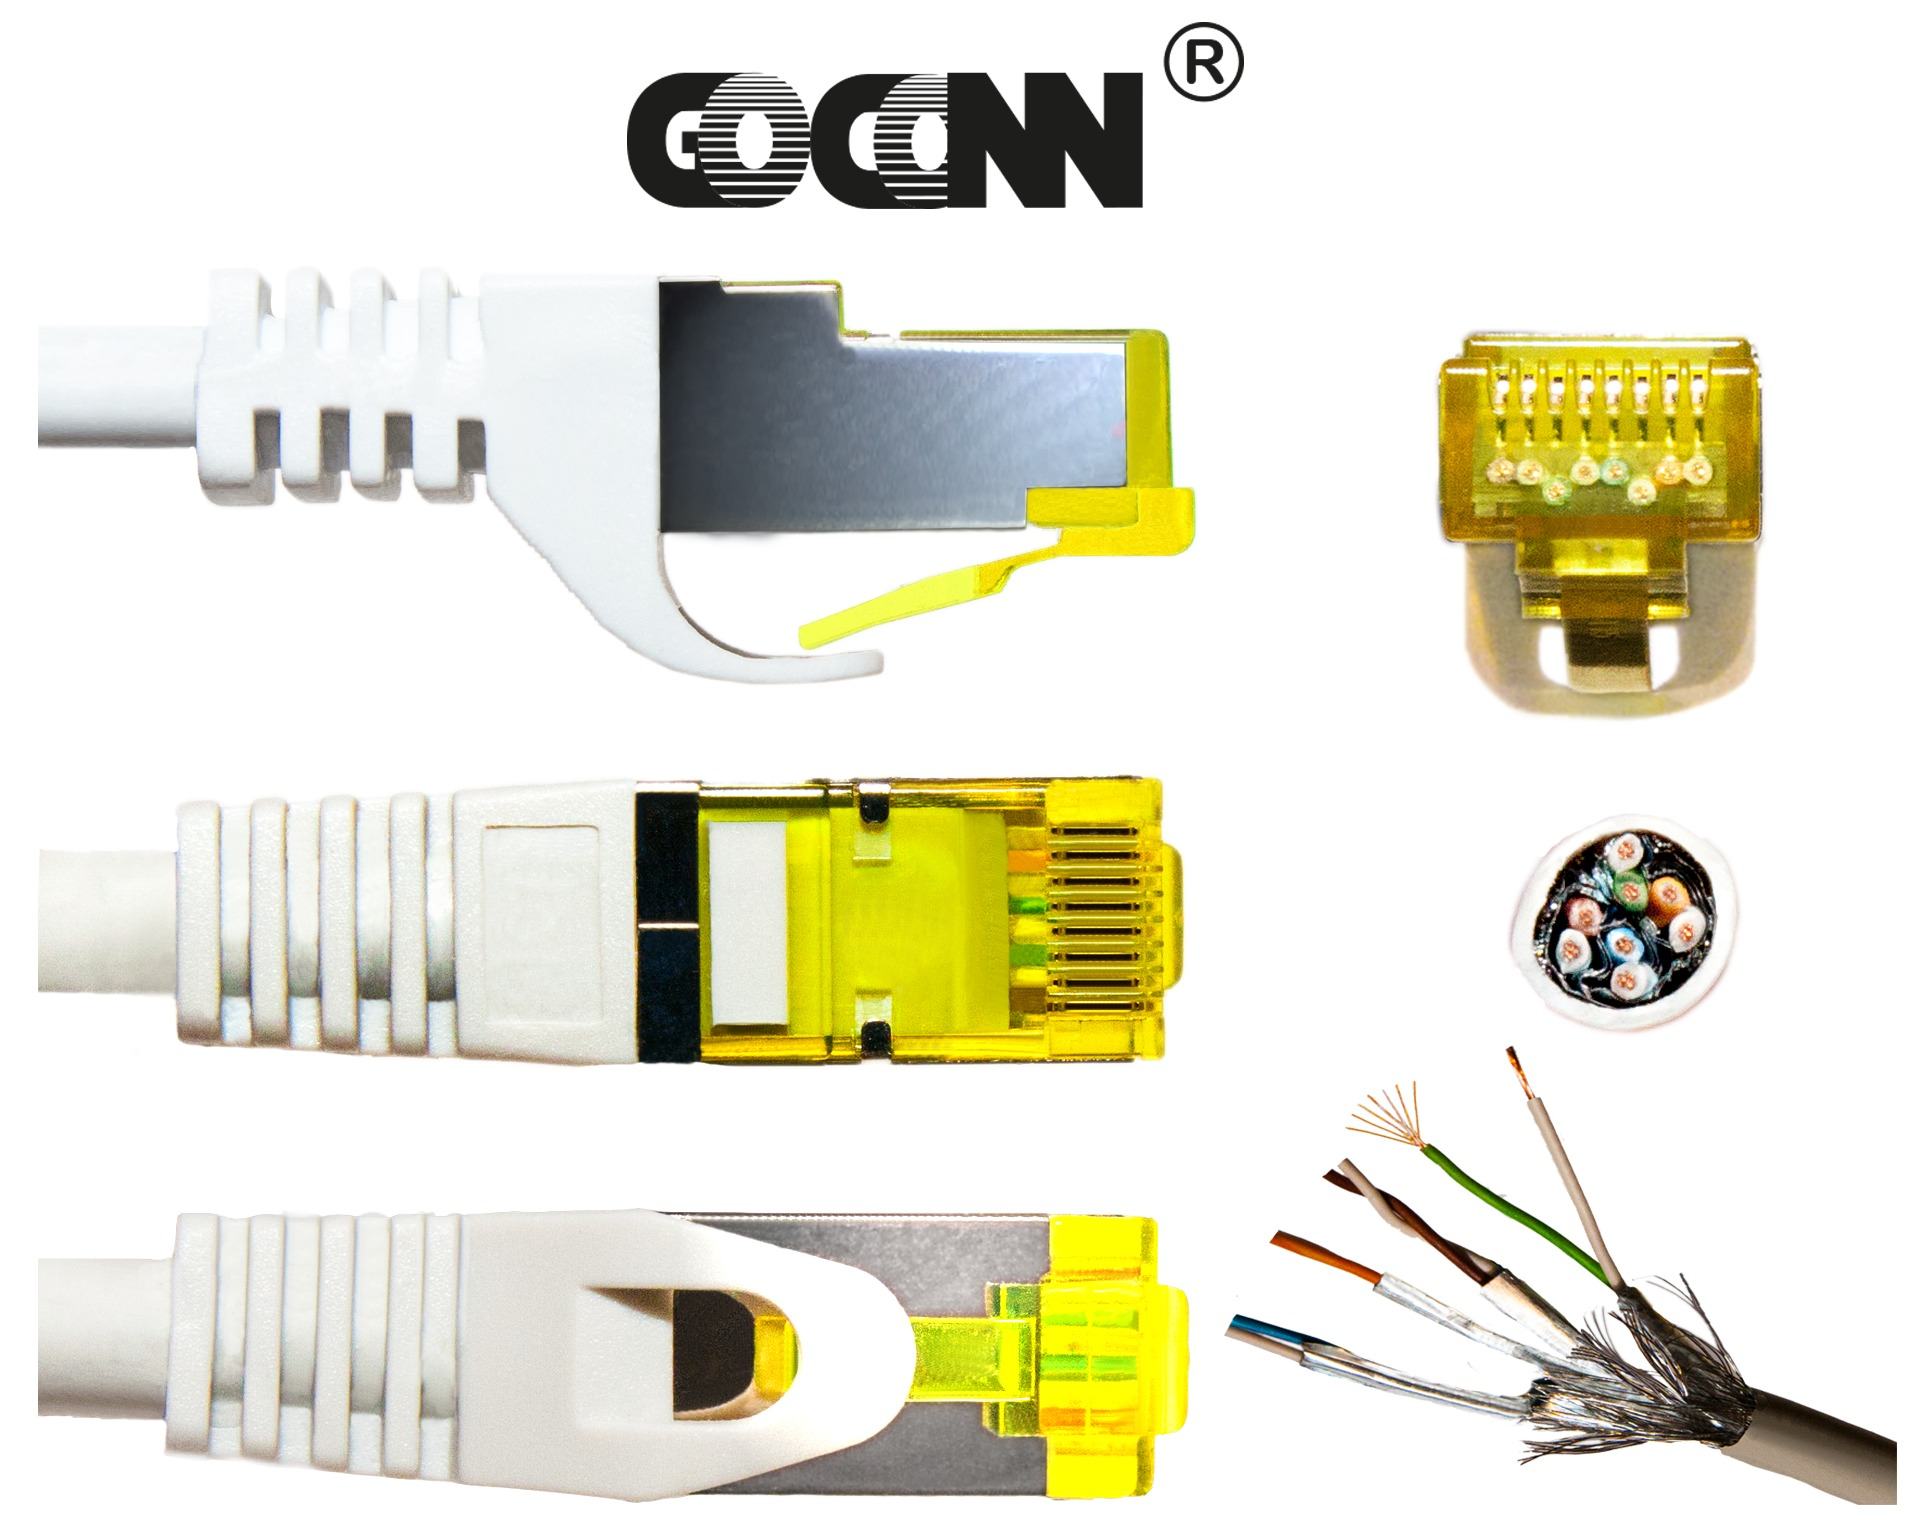 GoConn Patchkabel mit Cat7 Rohkabel 3m orange S/FTP PiMF 500MHz 2xgeschirmt